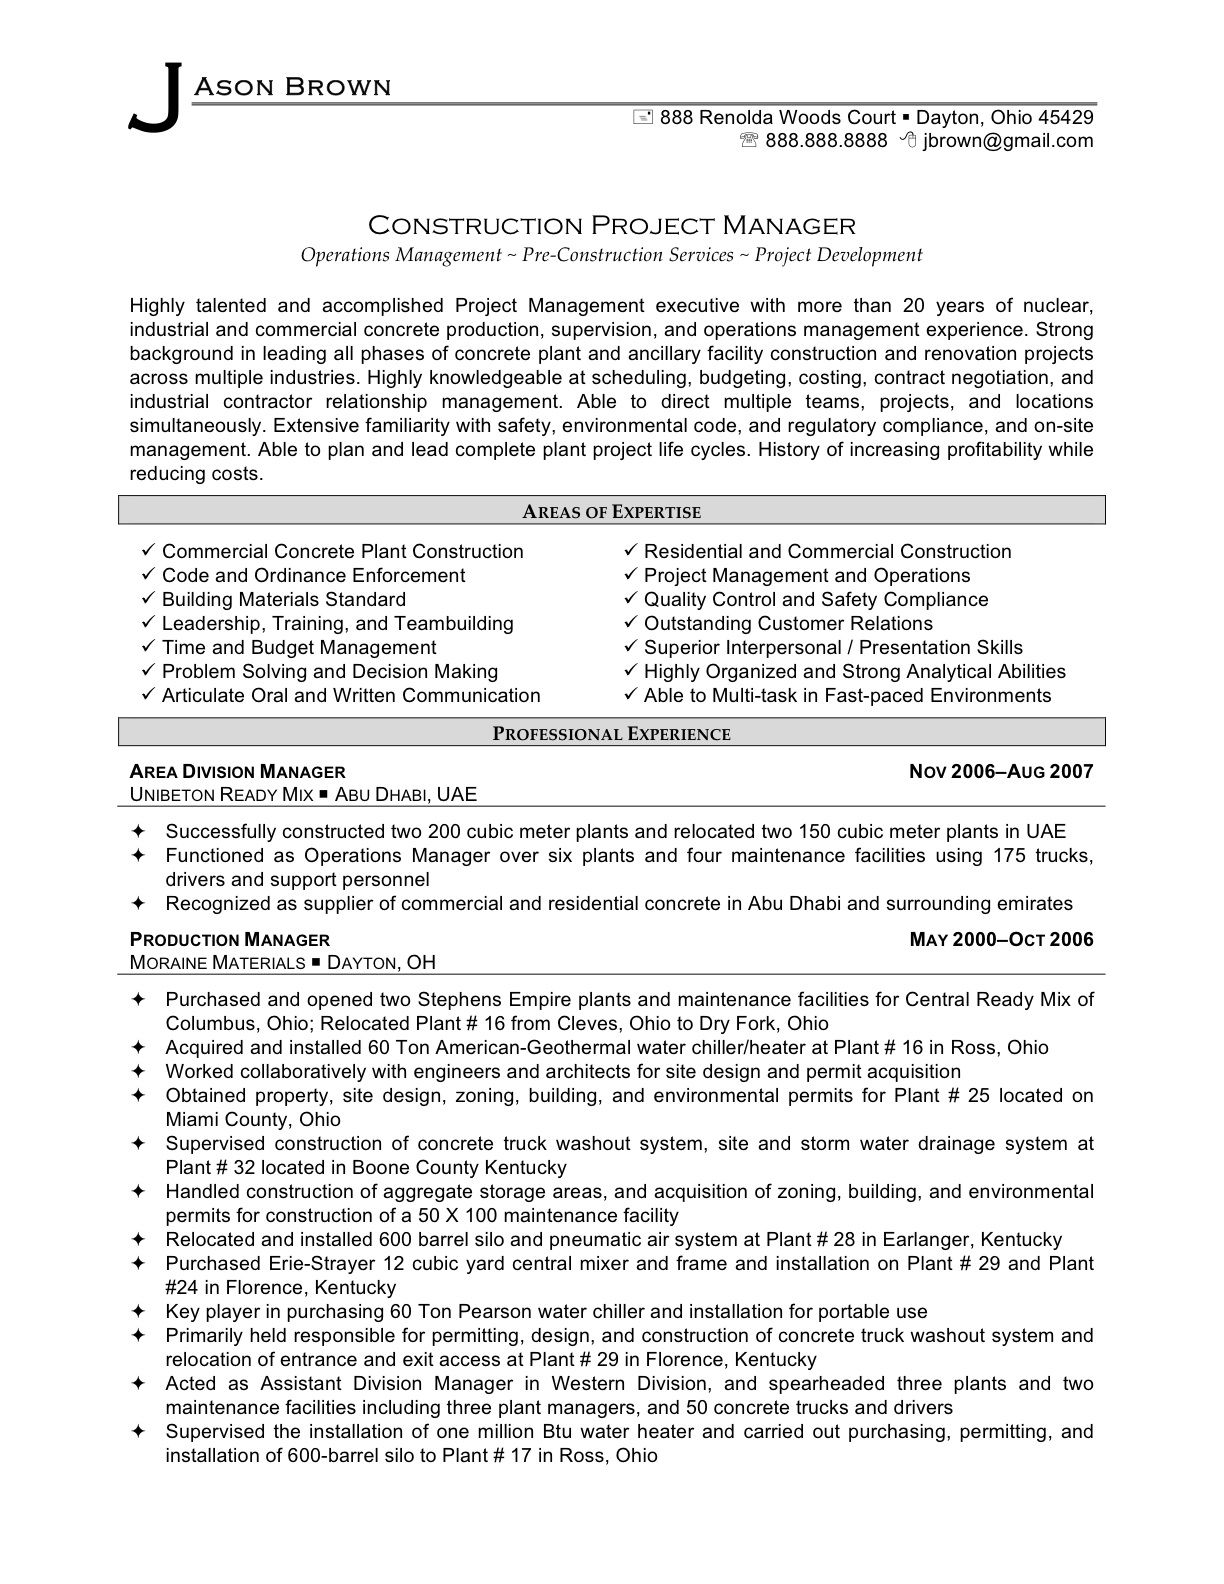 Resume Templates Project Manager | Residential Or Commercial Superintendent/Project  Manager